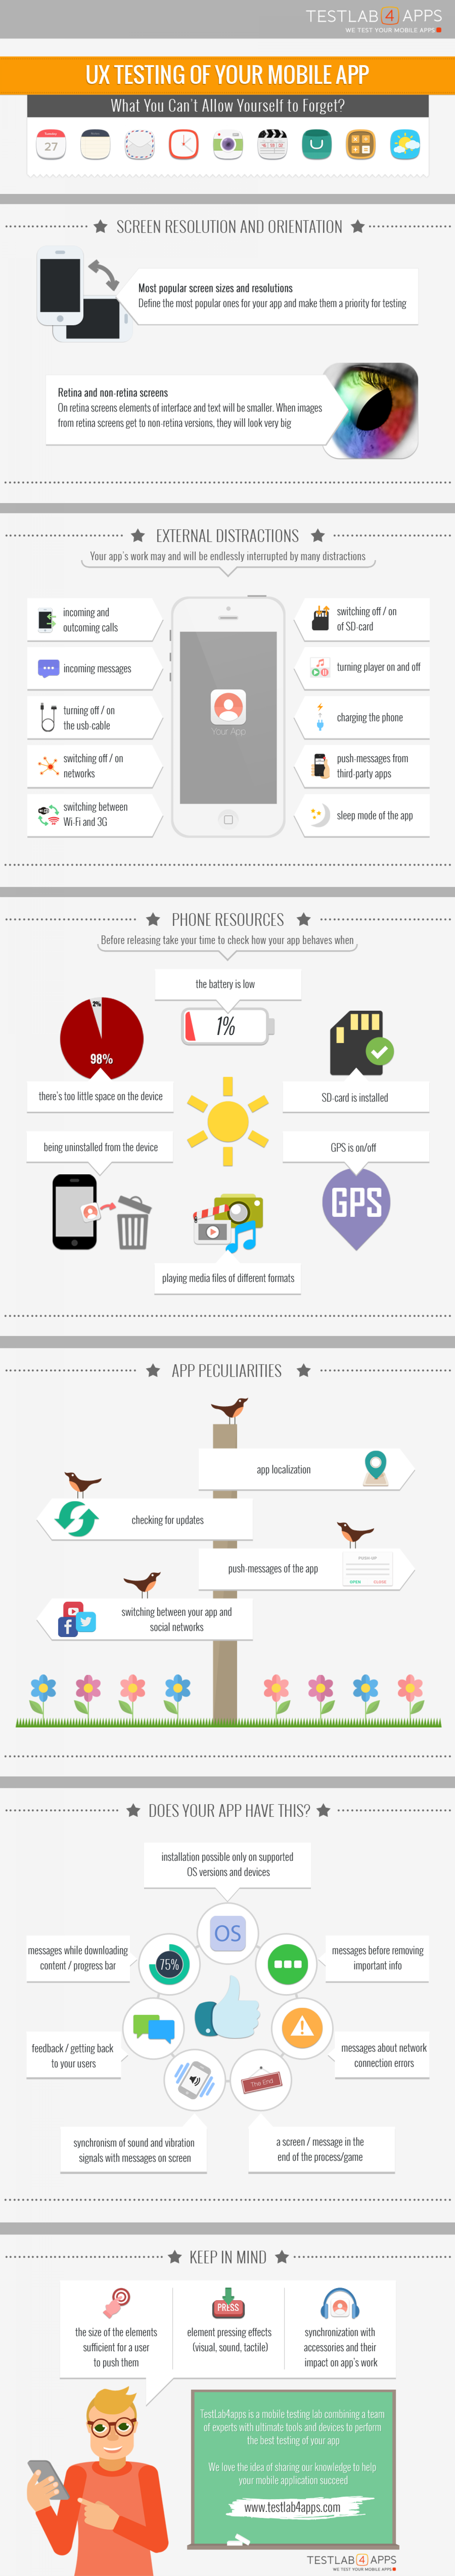 UX Testing of Your Mobile App Infographic